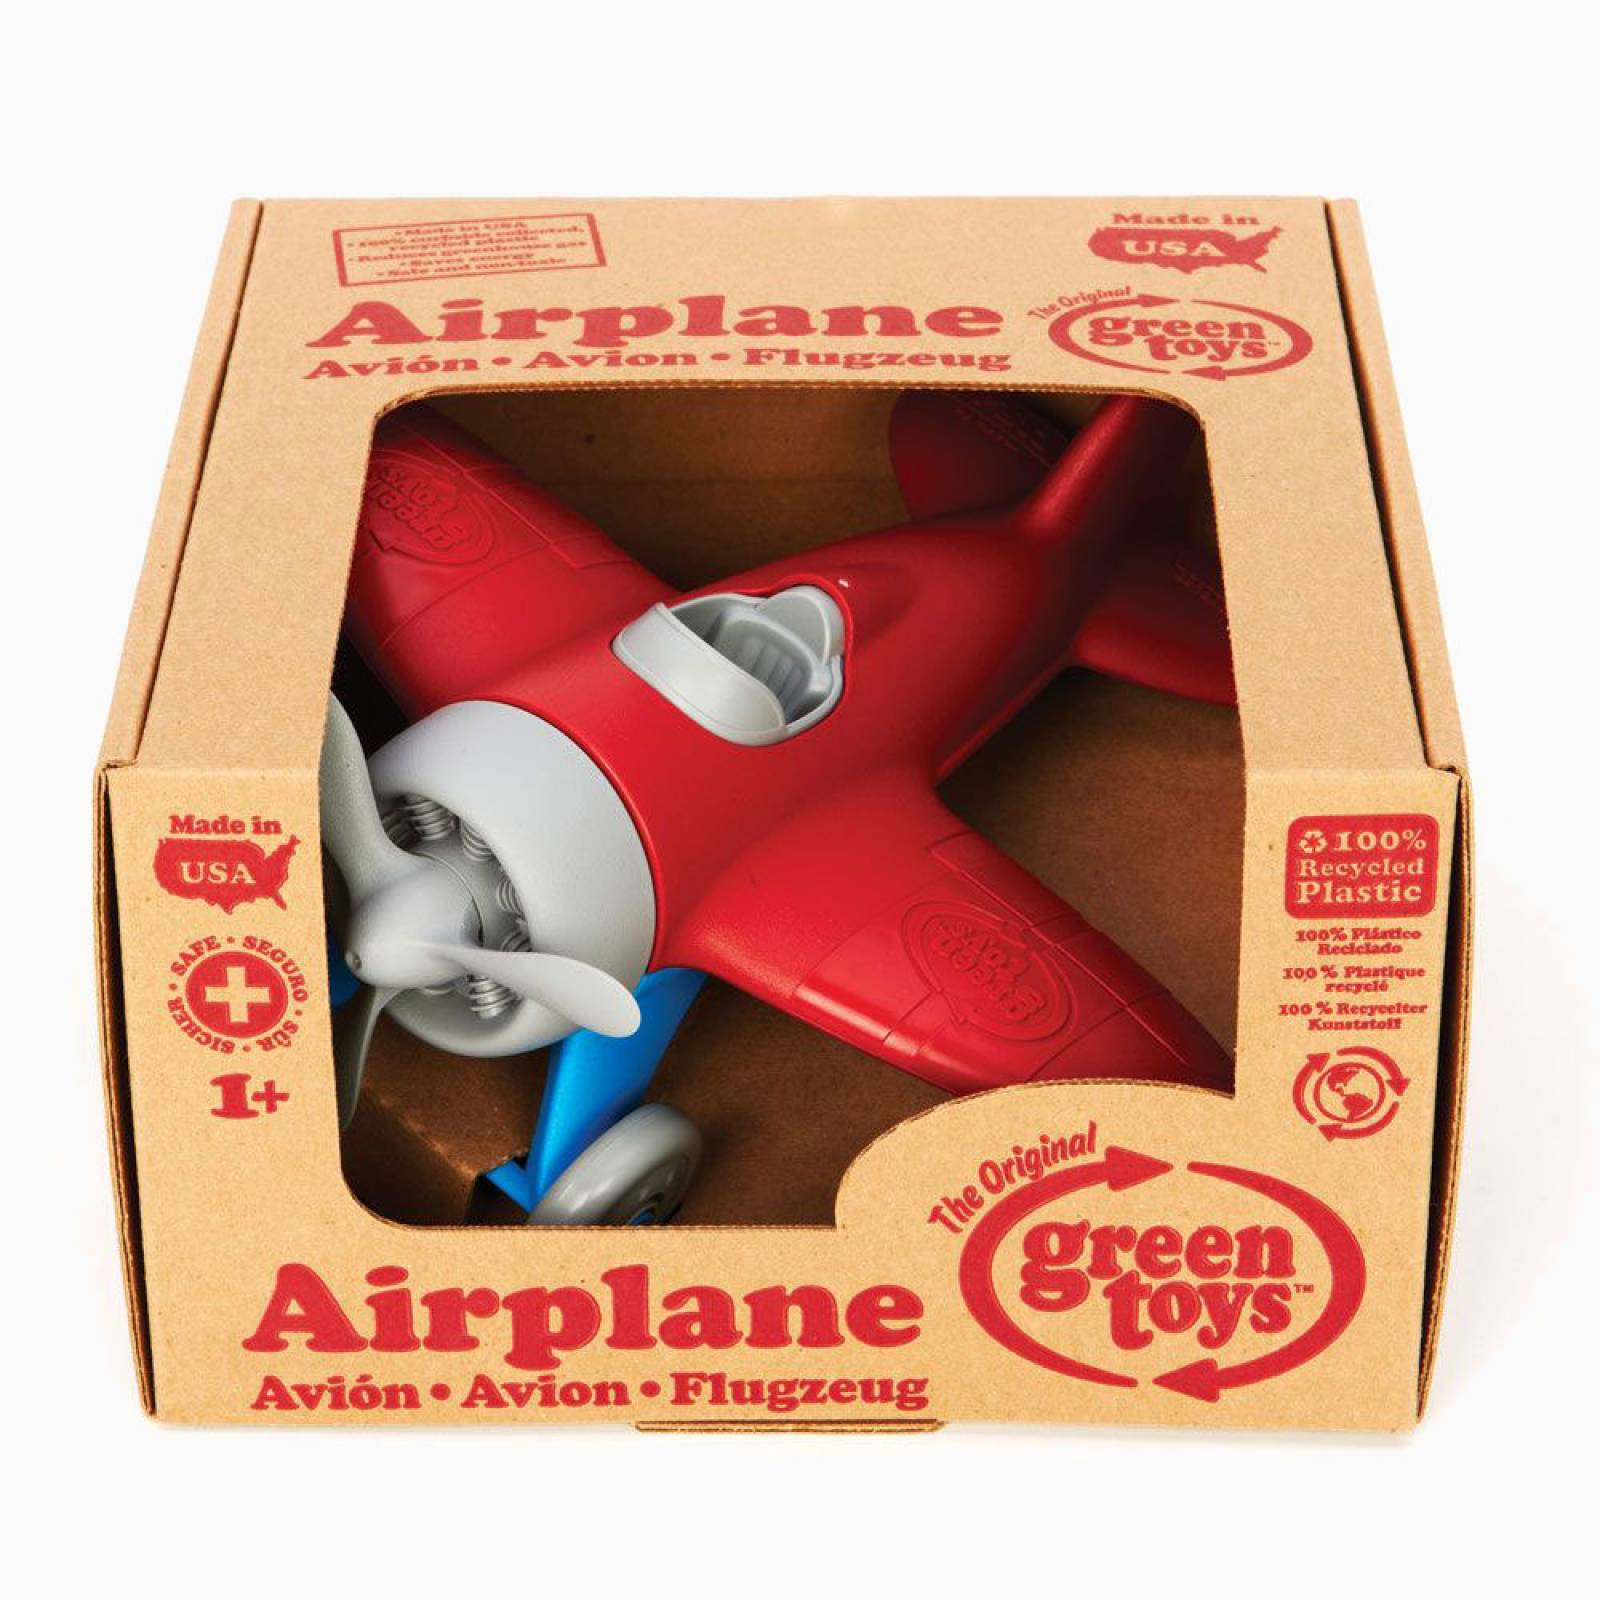 Red Airplane By Green Toys - Recycled Plastic 1+ thumbnails